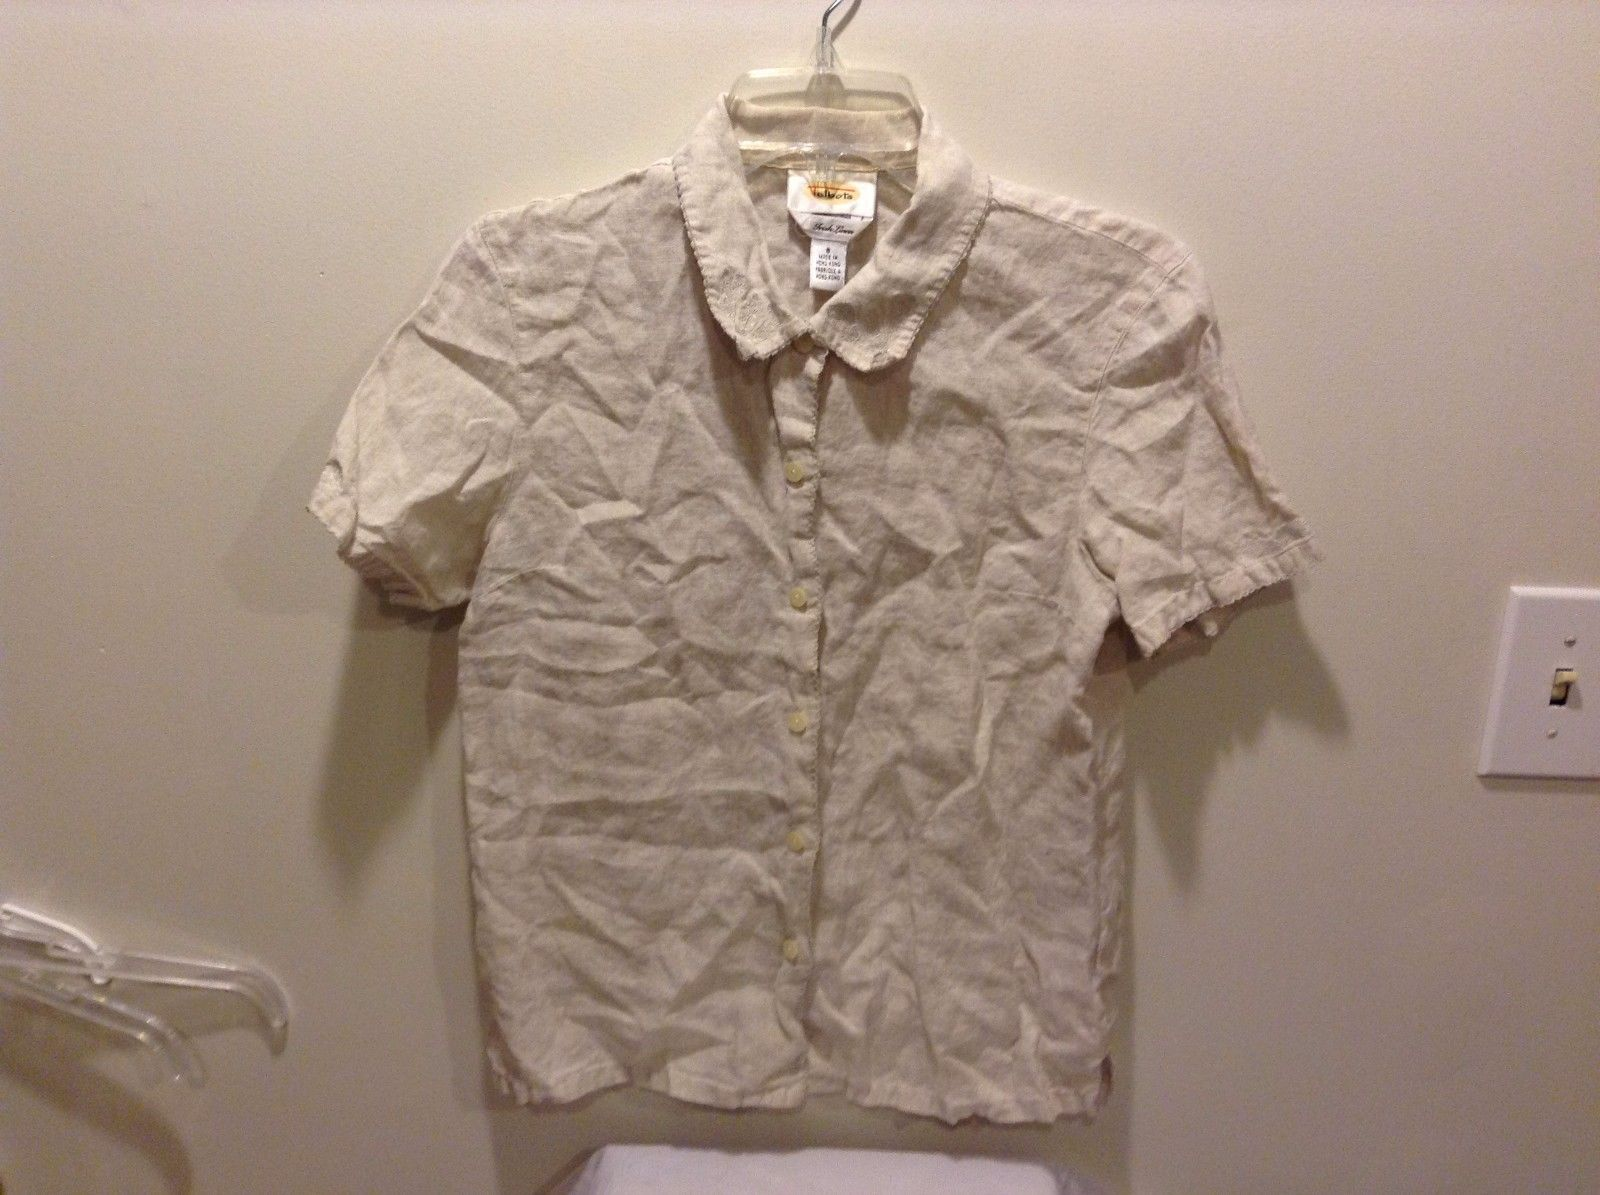 Women's Used Good Condition Talbots Irish Linen Size 8 Button Up Cream Embroider